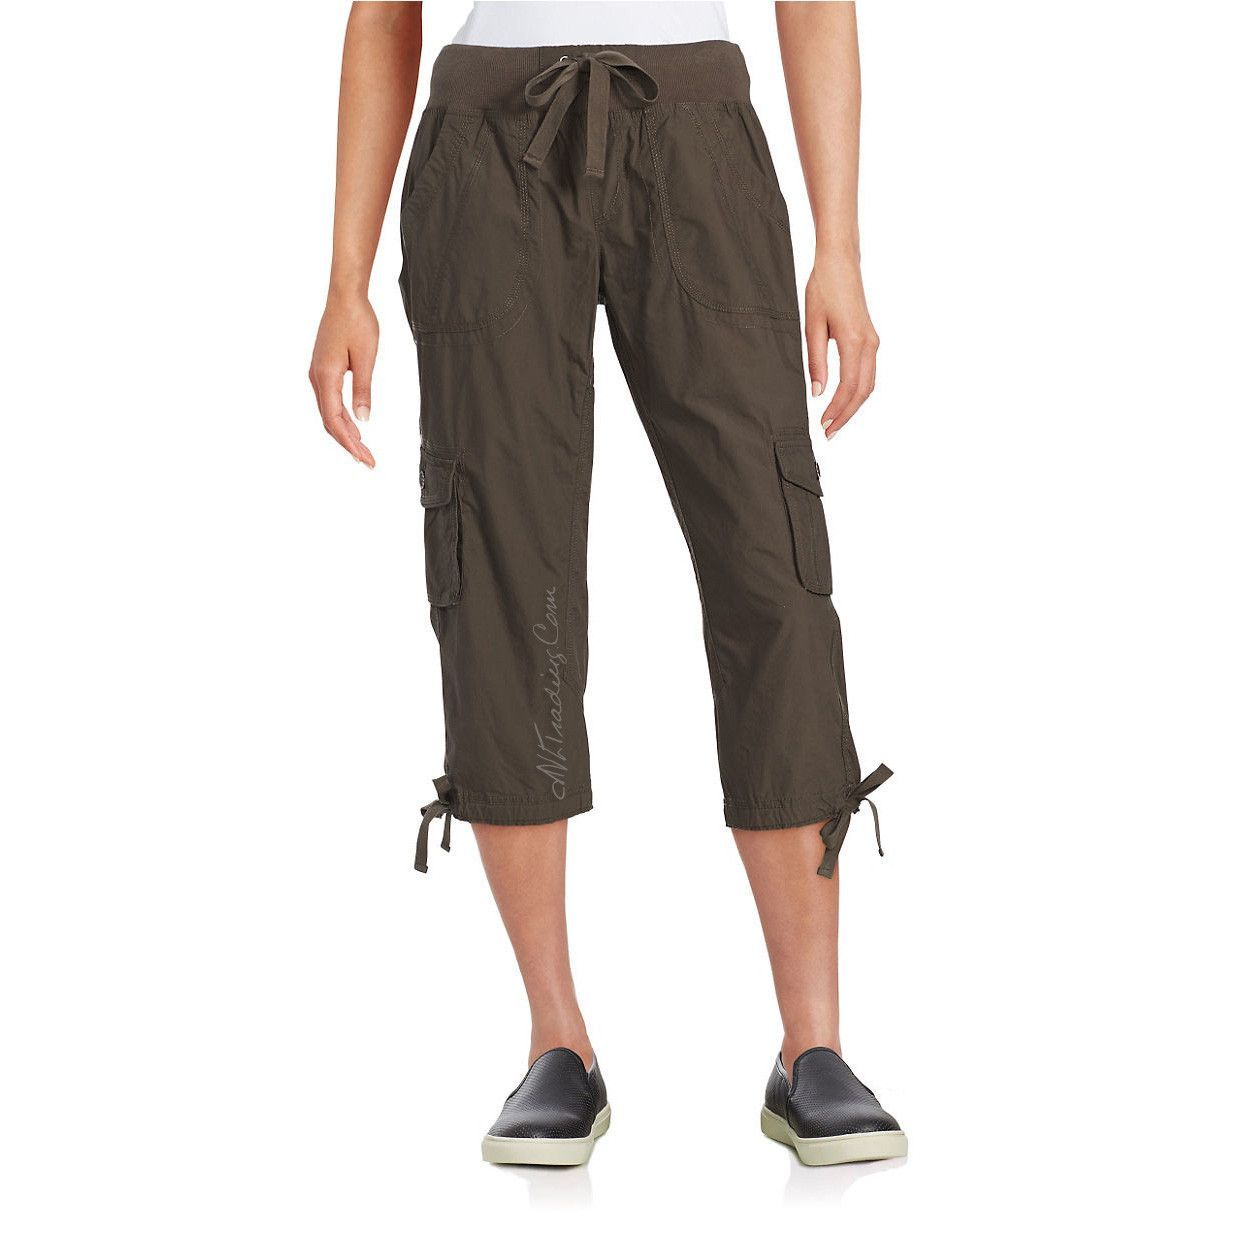 e86be1ca518de0 Calvin Klein White Label Performance 100% Cotton Drawstring Pull-on Cargo  Capri Pants